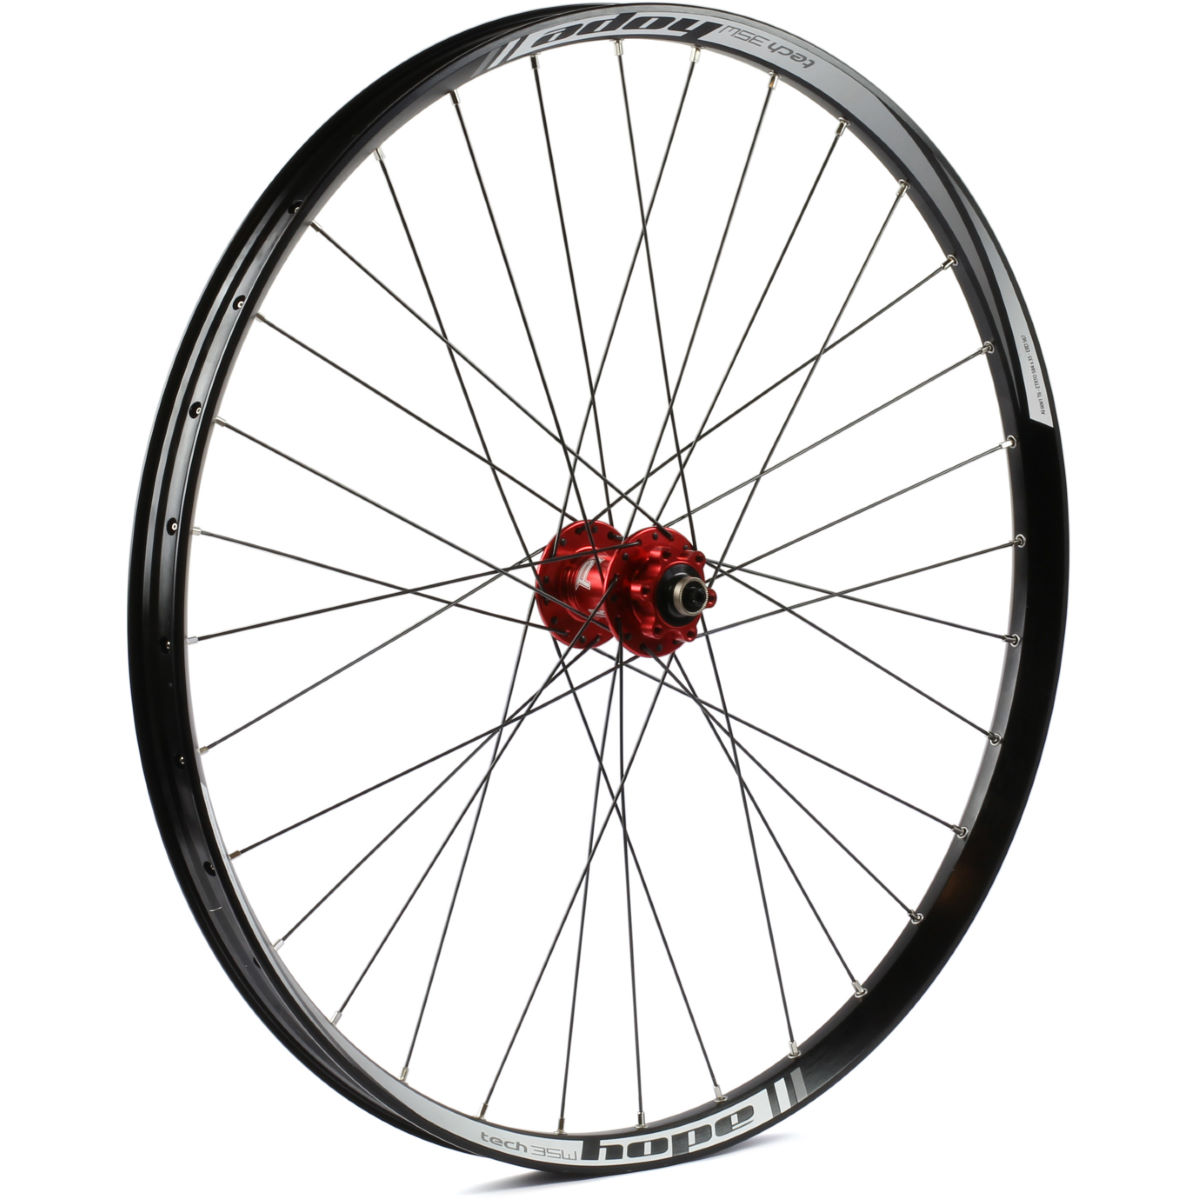 Roue avant VTT Hope Tech 35W Pro 4 - 27.5+'' n/a 15x110mm Orange